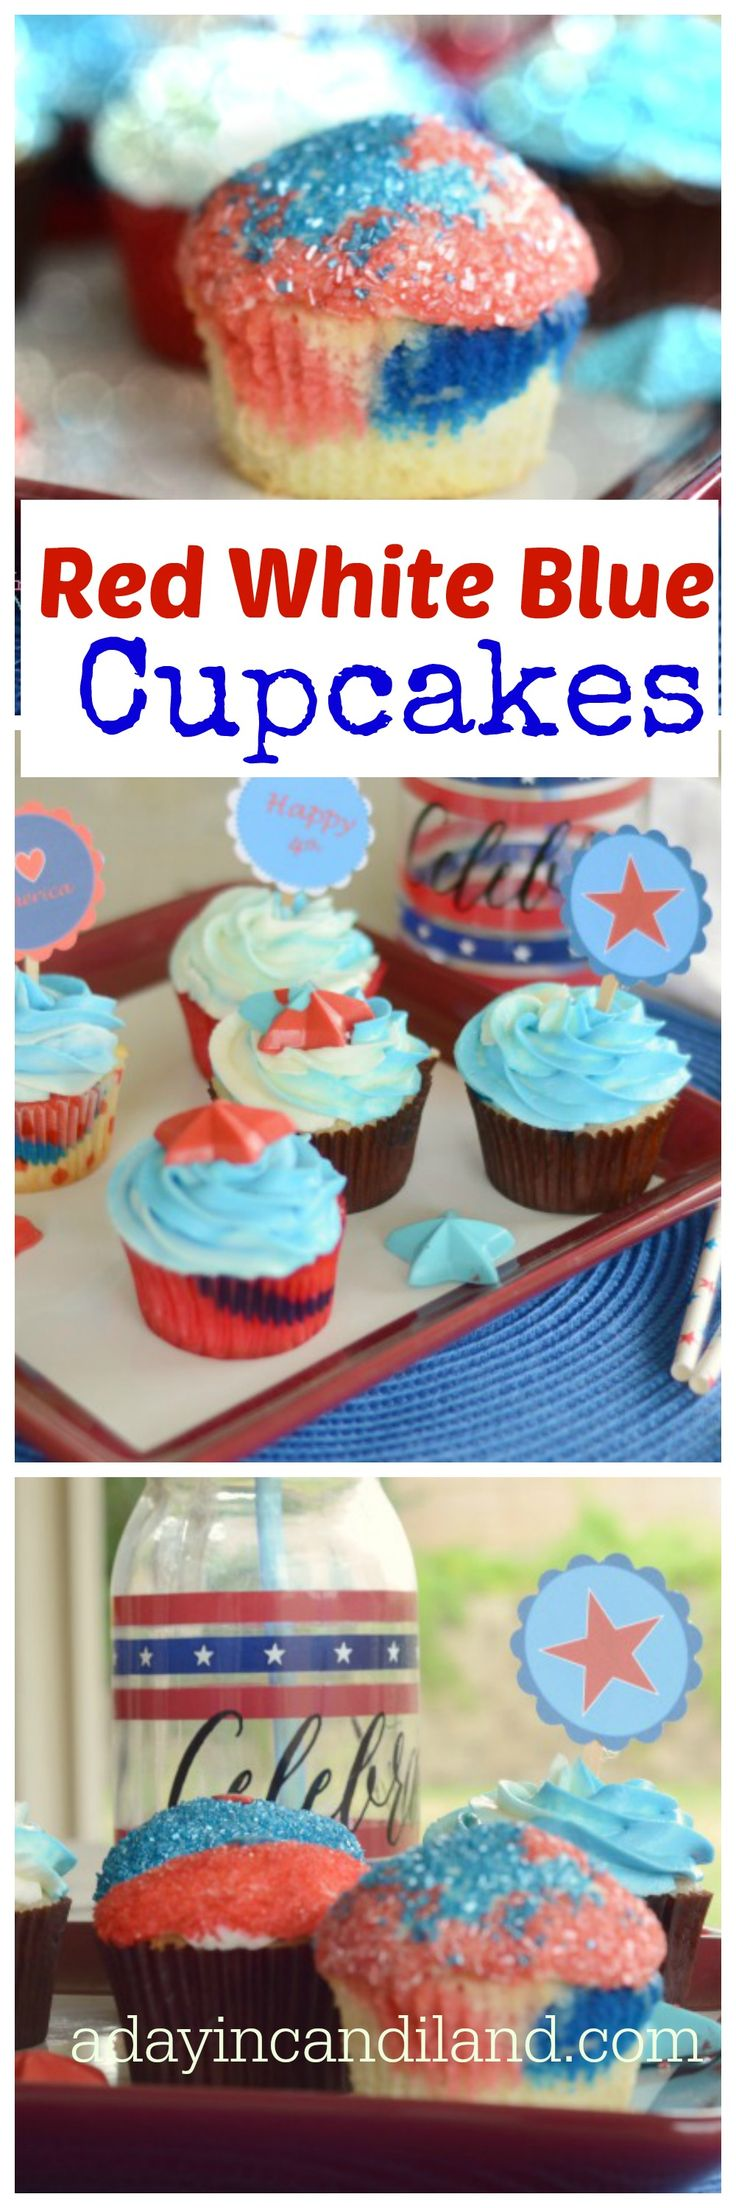 A Day In Candiland   Red White Blue Cupcakes with Cupcake Toppers for 4th of July   http://adayincandiland.com